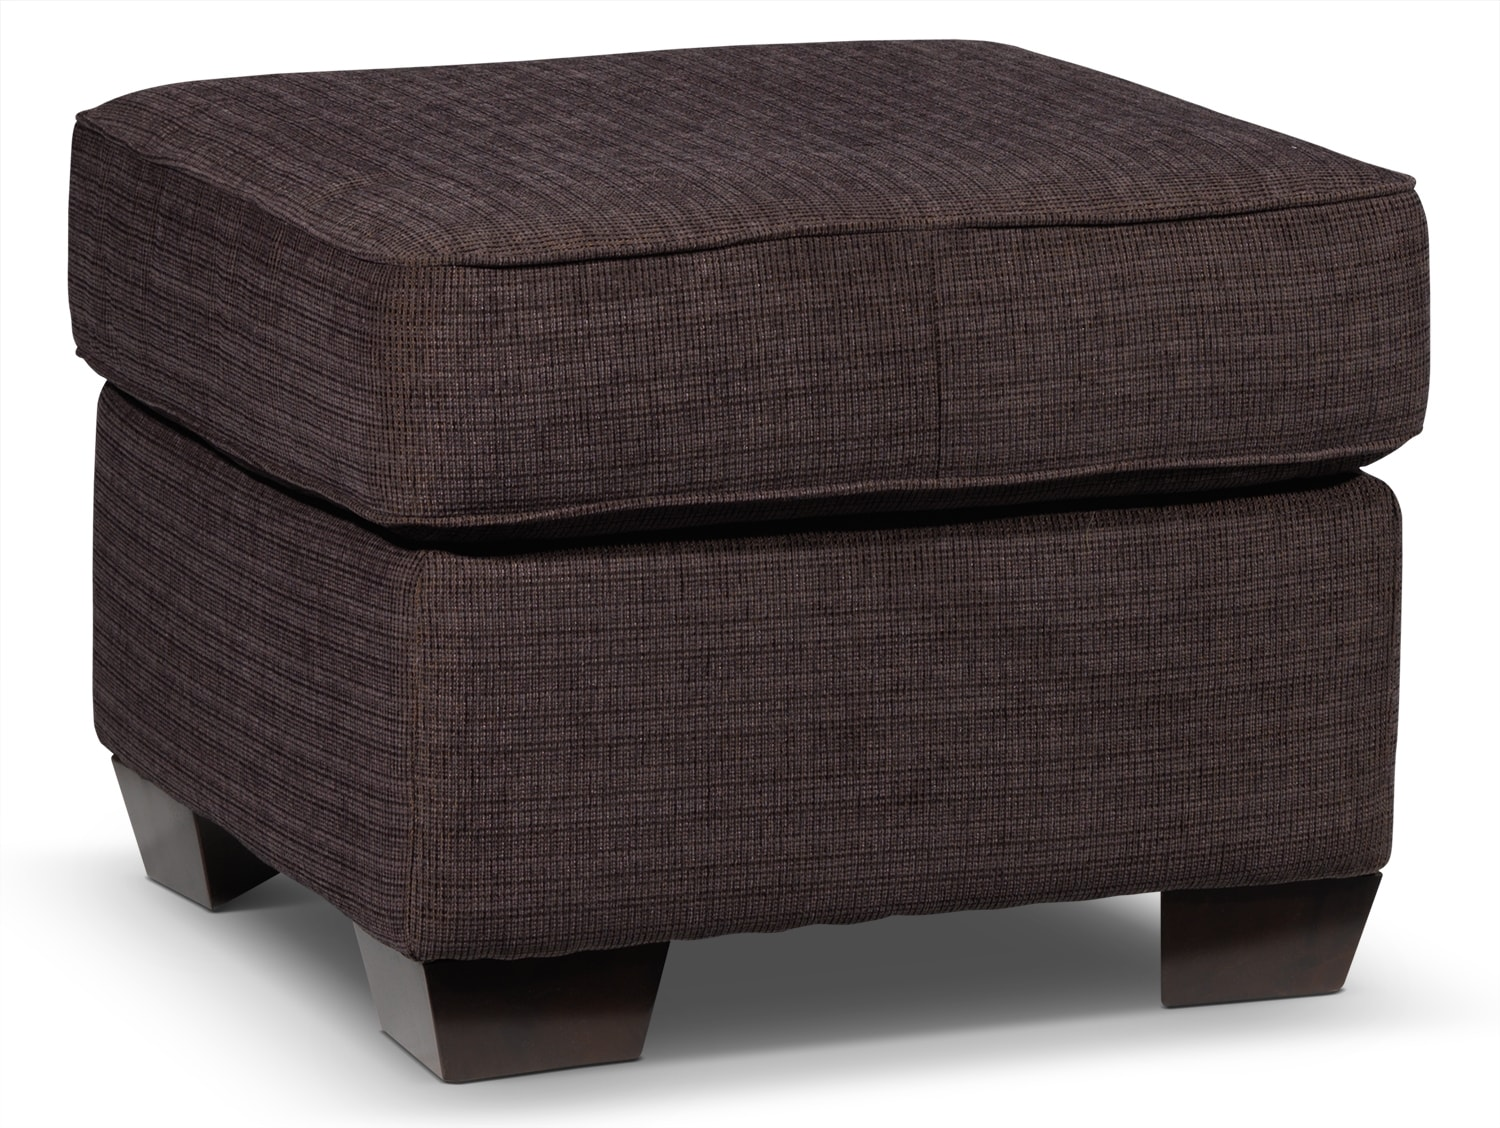 Living Room Furniture - Perkin Ottoman - Deep Brown